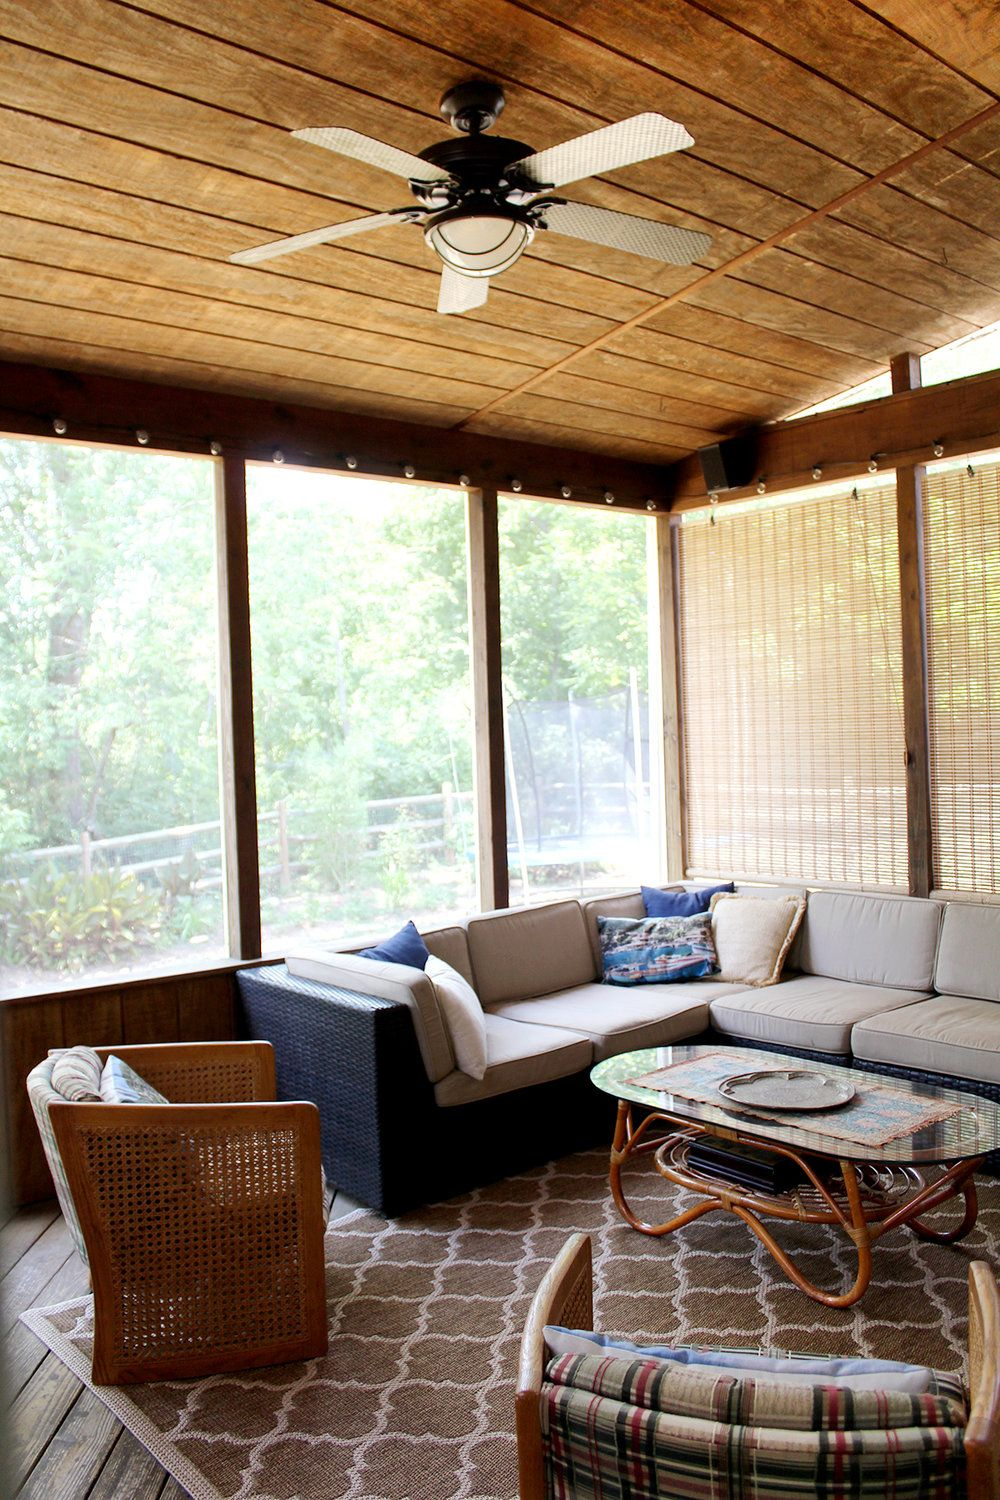 A Screened In Porch On A Budget House With Porch Rustic Home